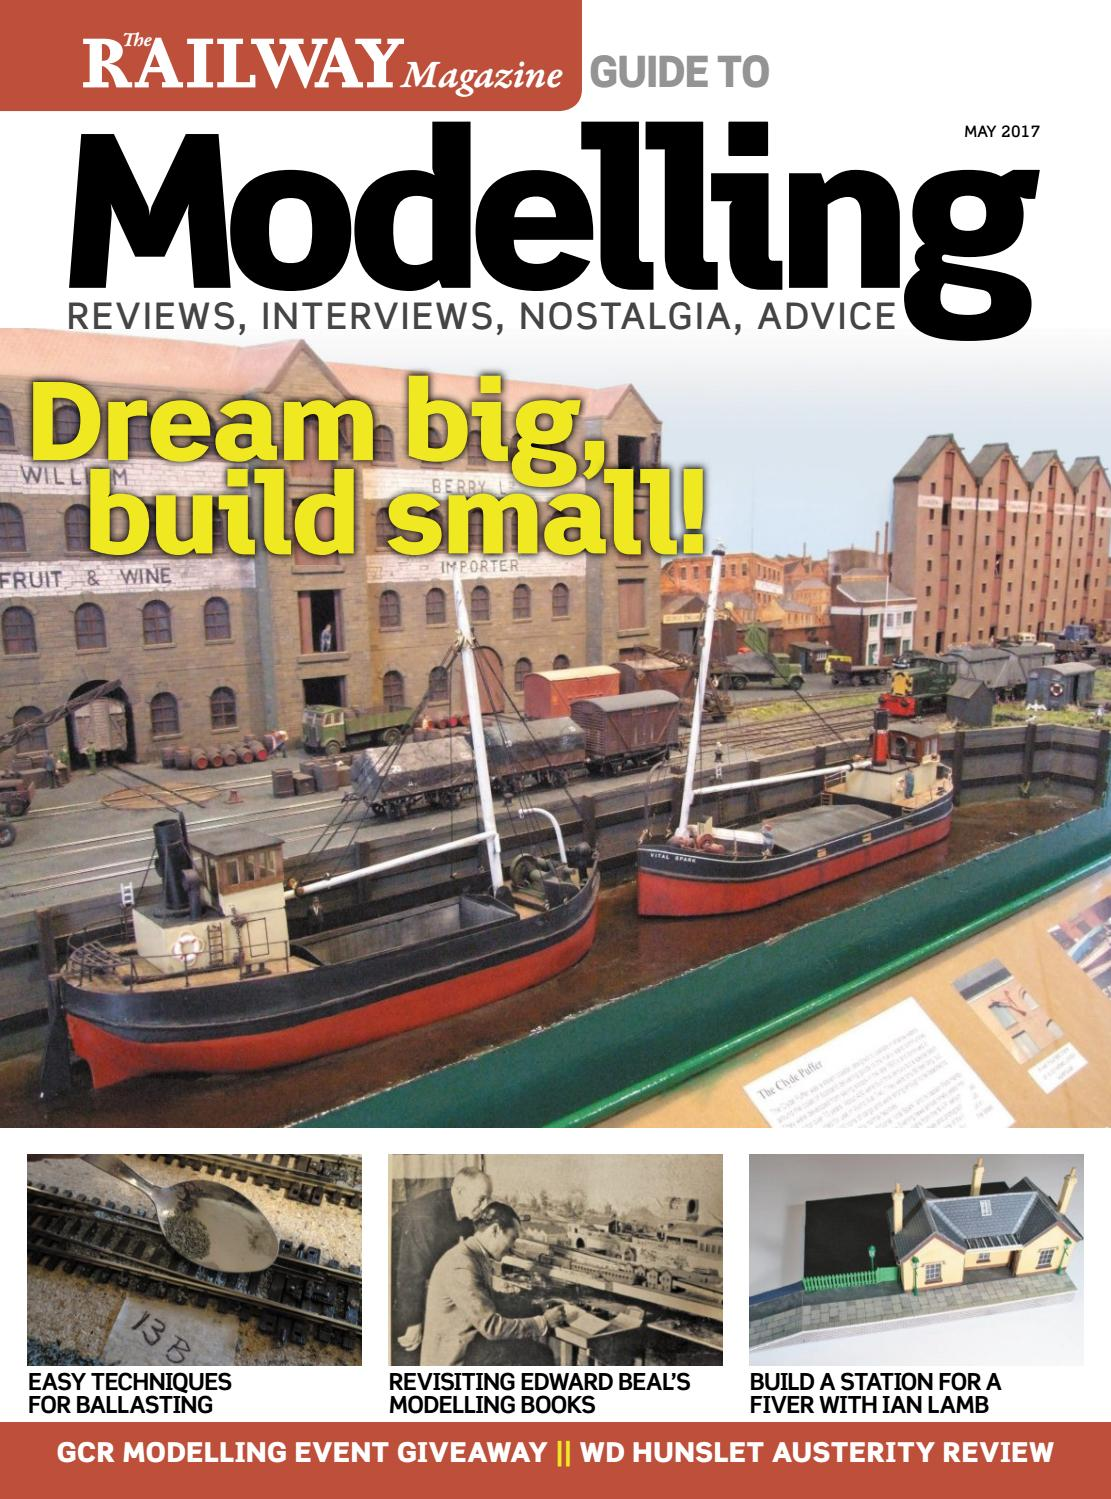 The Railway Magazine Guide To Modelling